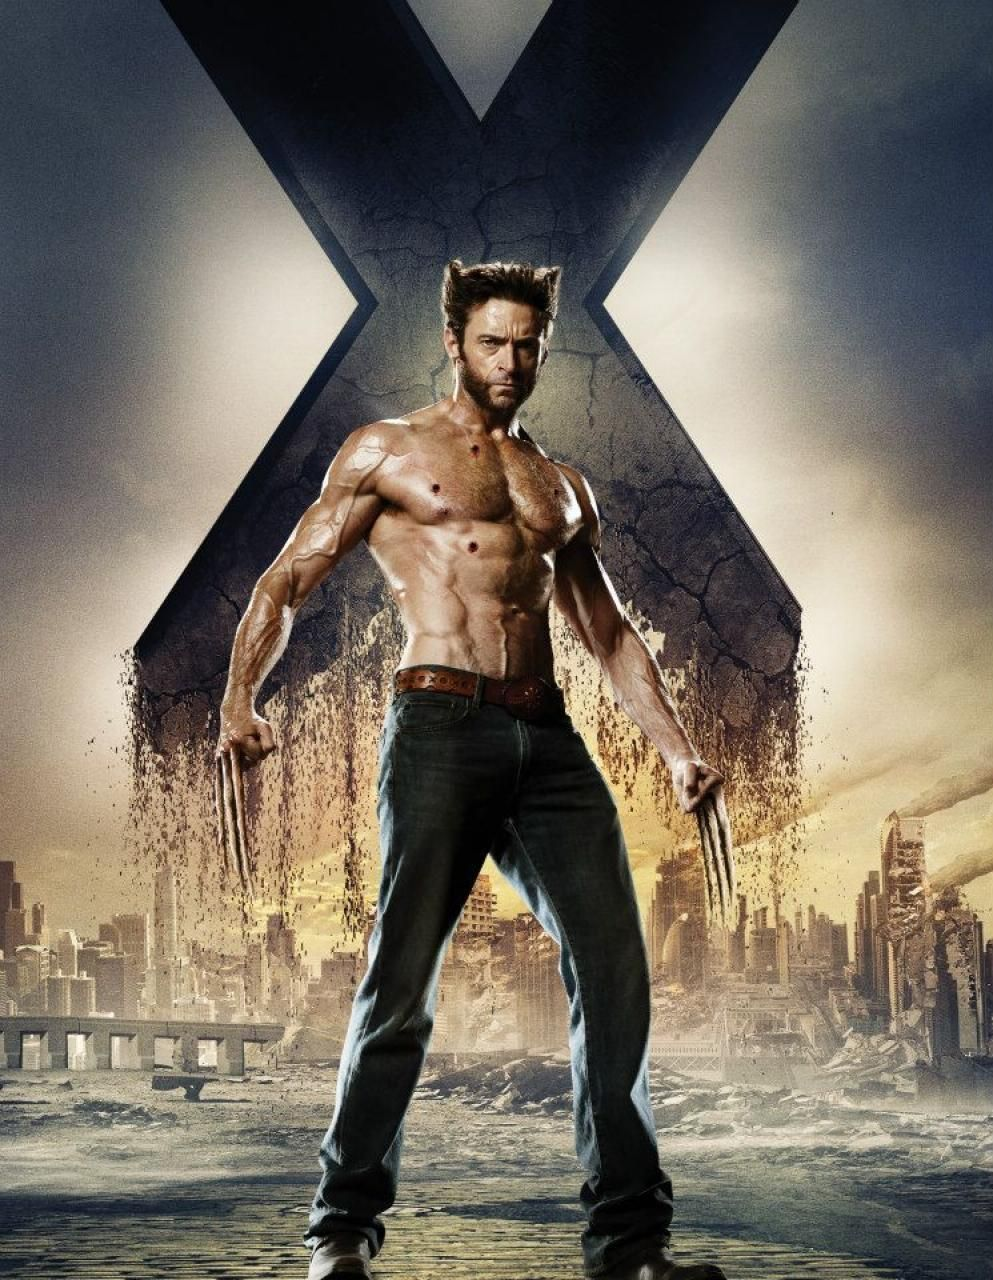 X-Men-Days-of-Future-Past-Character-Poster-Wolverine-Boneclaws.jpg